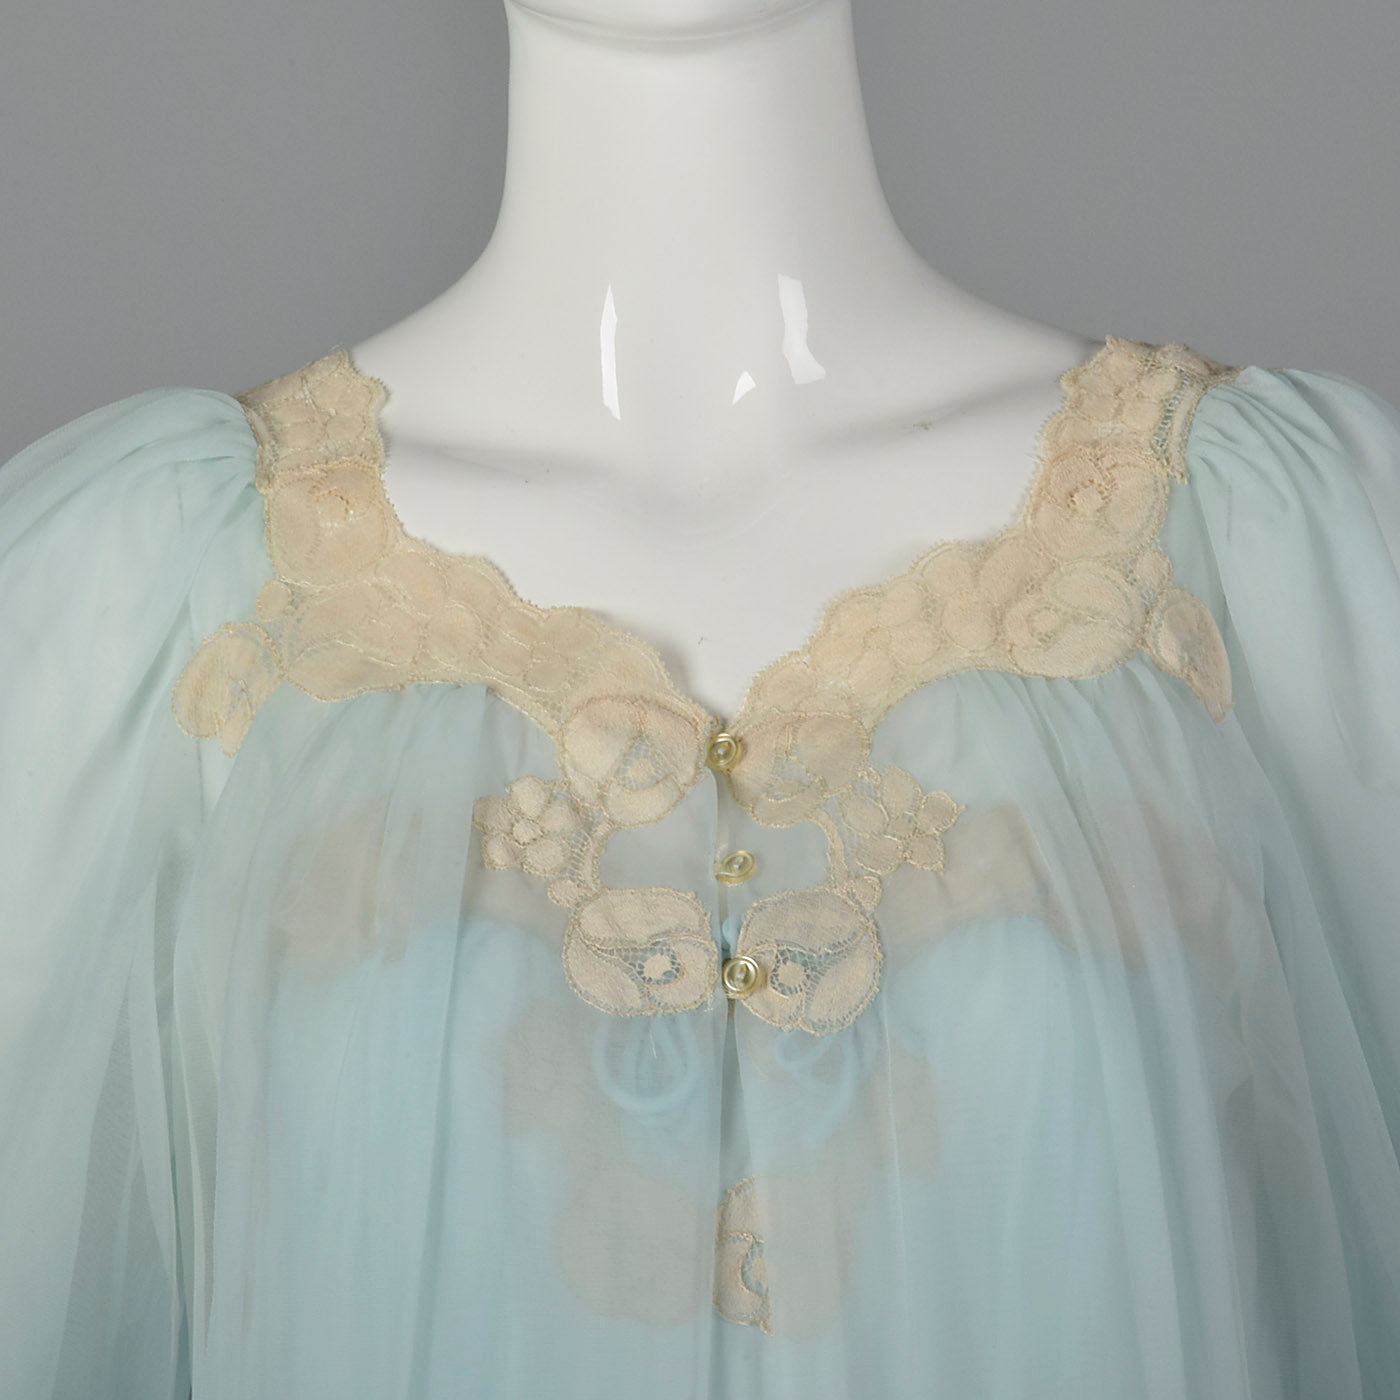 1950s Blue Nightgown and Peignoir Set